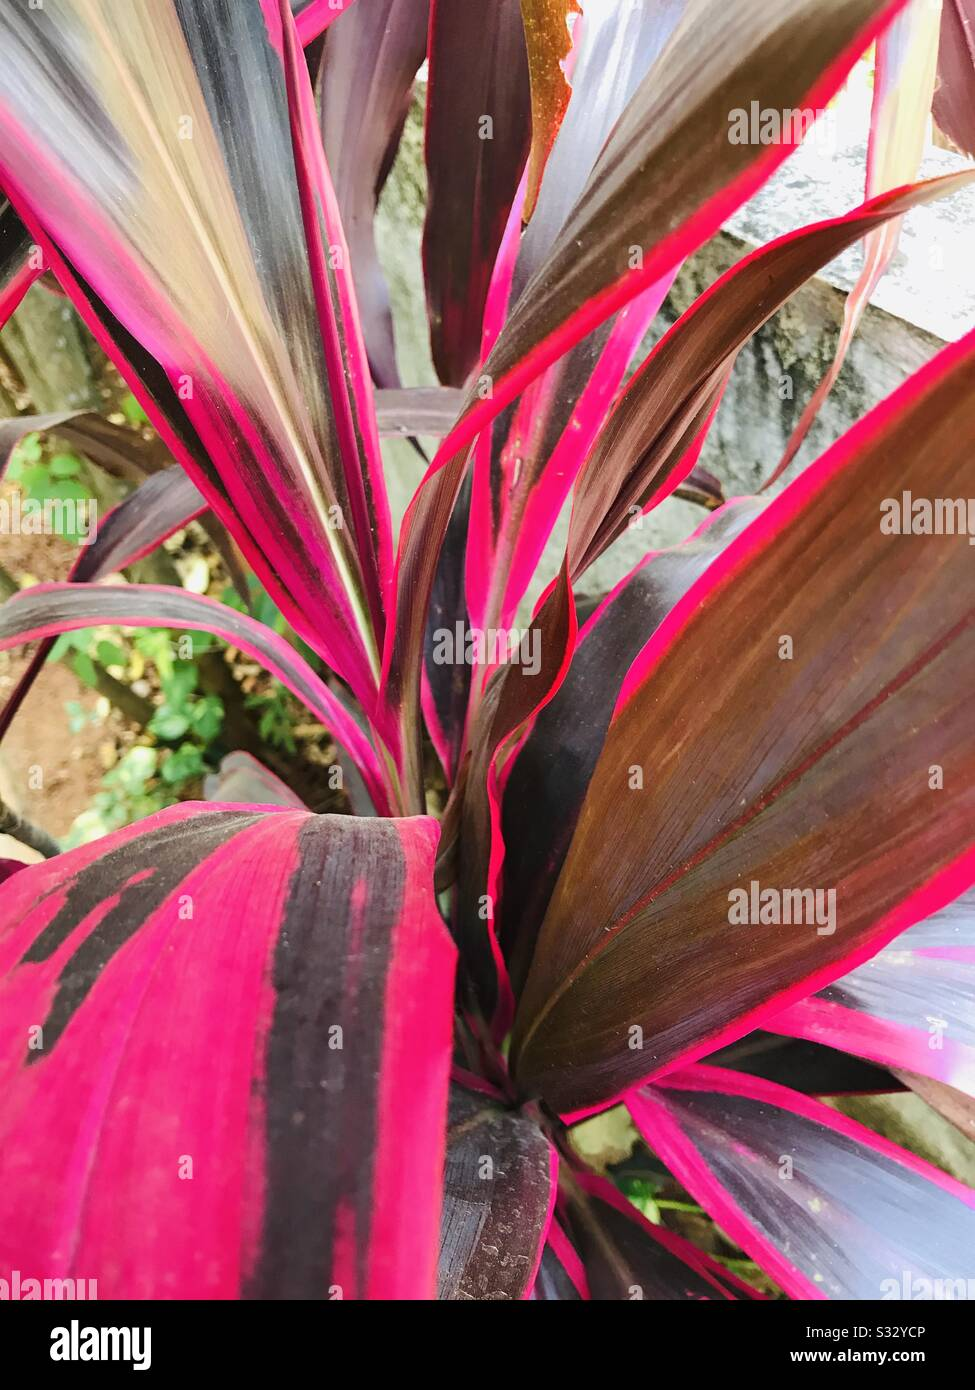 Red Sister Cordyline Terminalis Dracaena Ti Plant In My Mom S Garden In India Aka Red Leaf Croton Plant Ornamental Indoor Plants Stock Photo Alamy